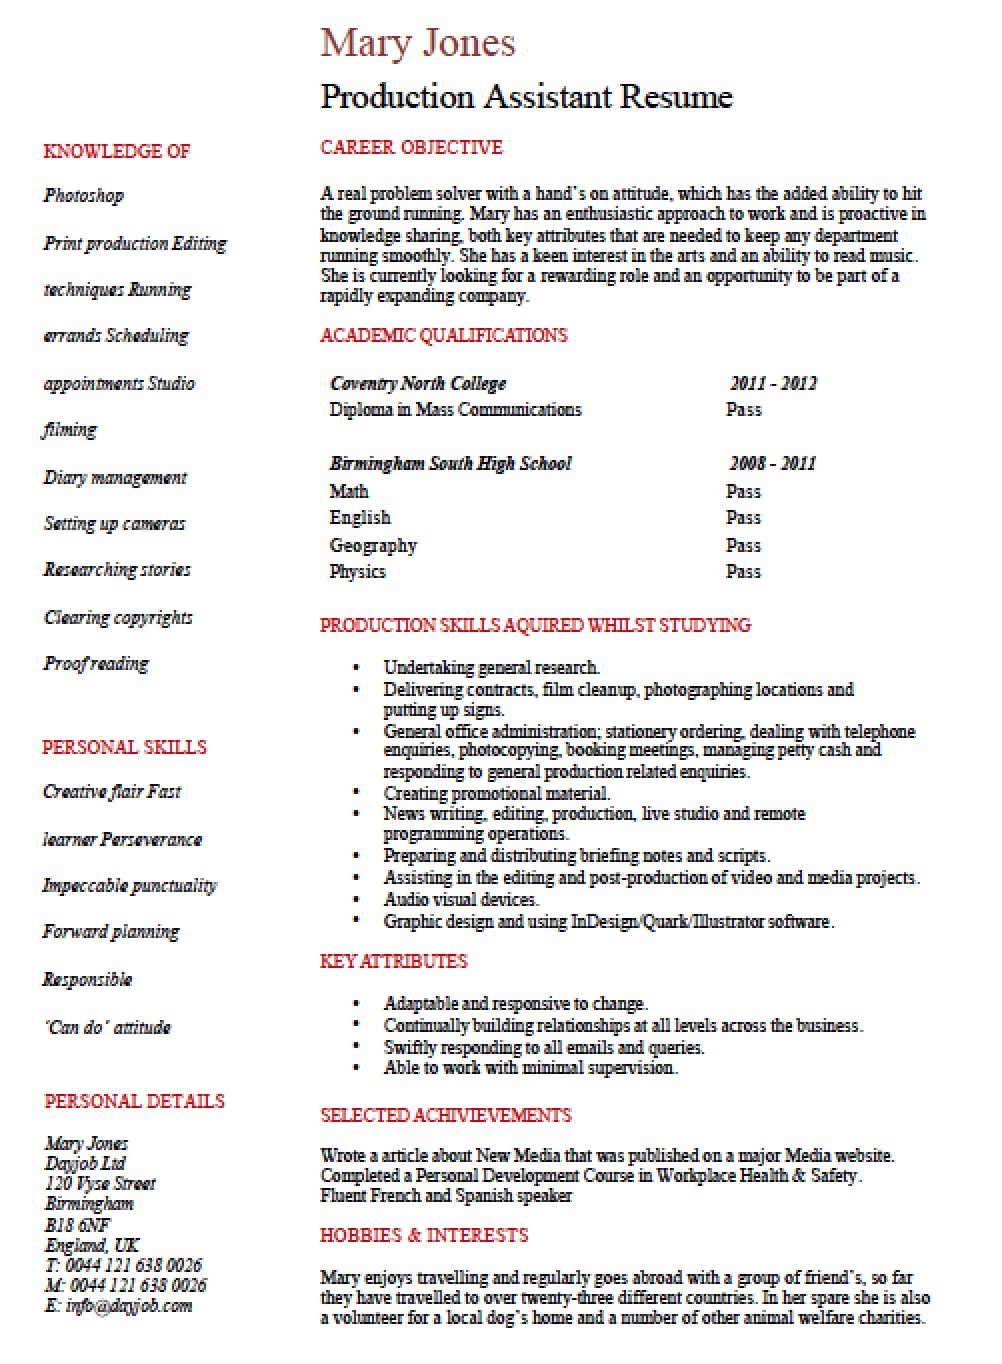 adobe pdf pdf rich text rtf microsoft word - Production Assistant Resume Template